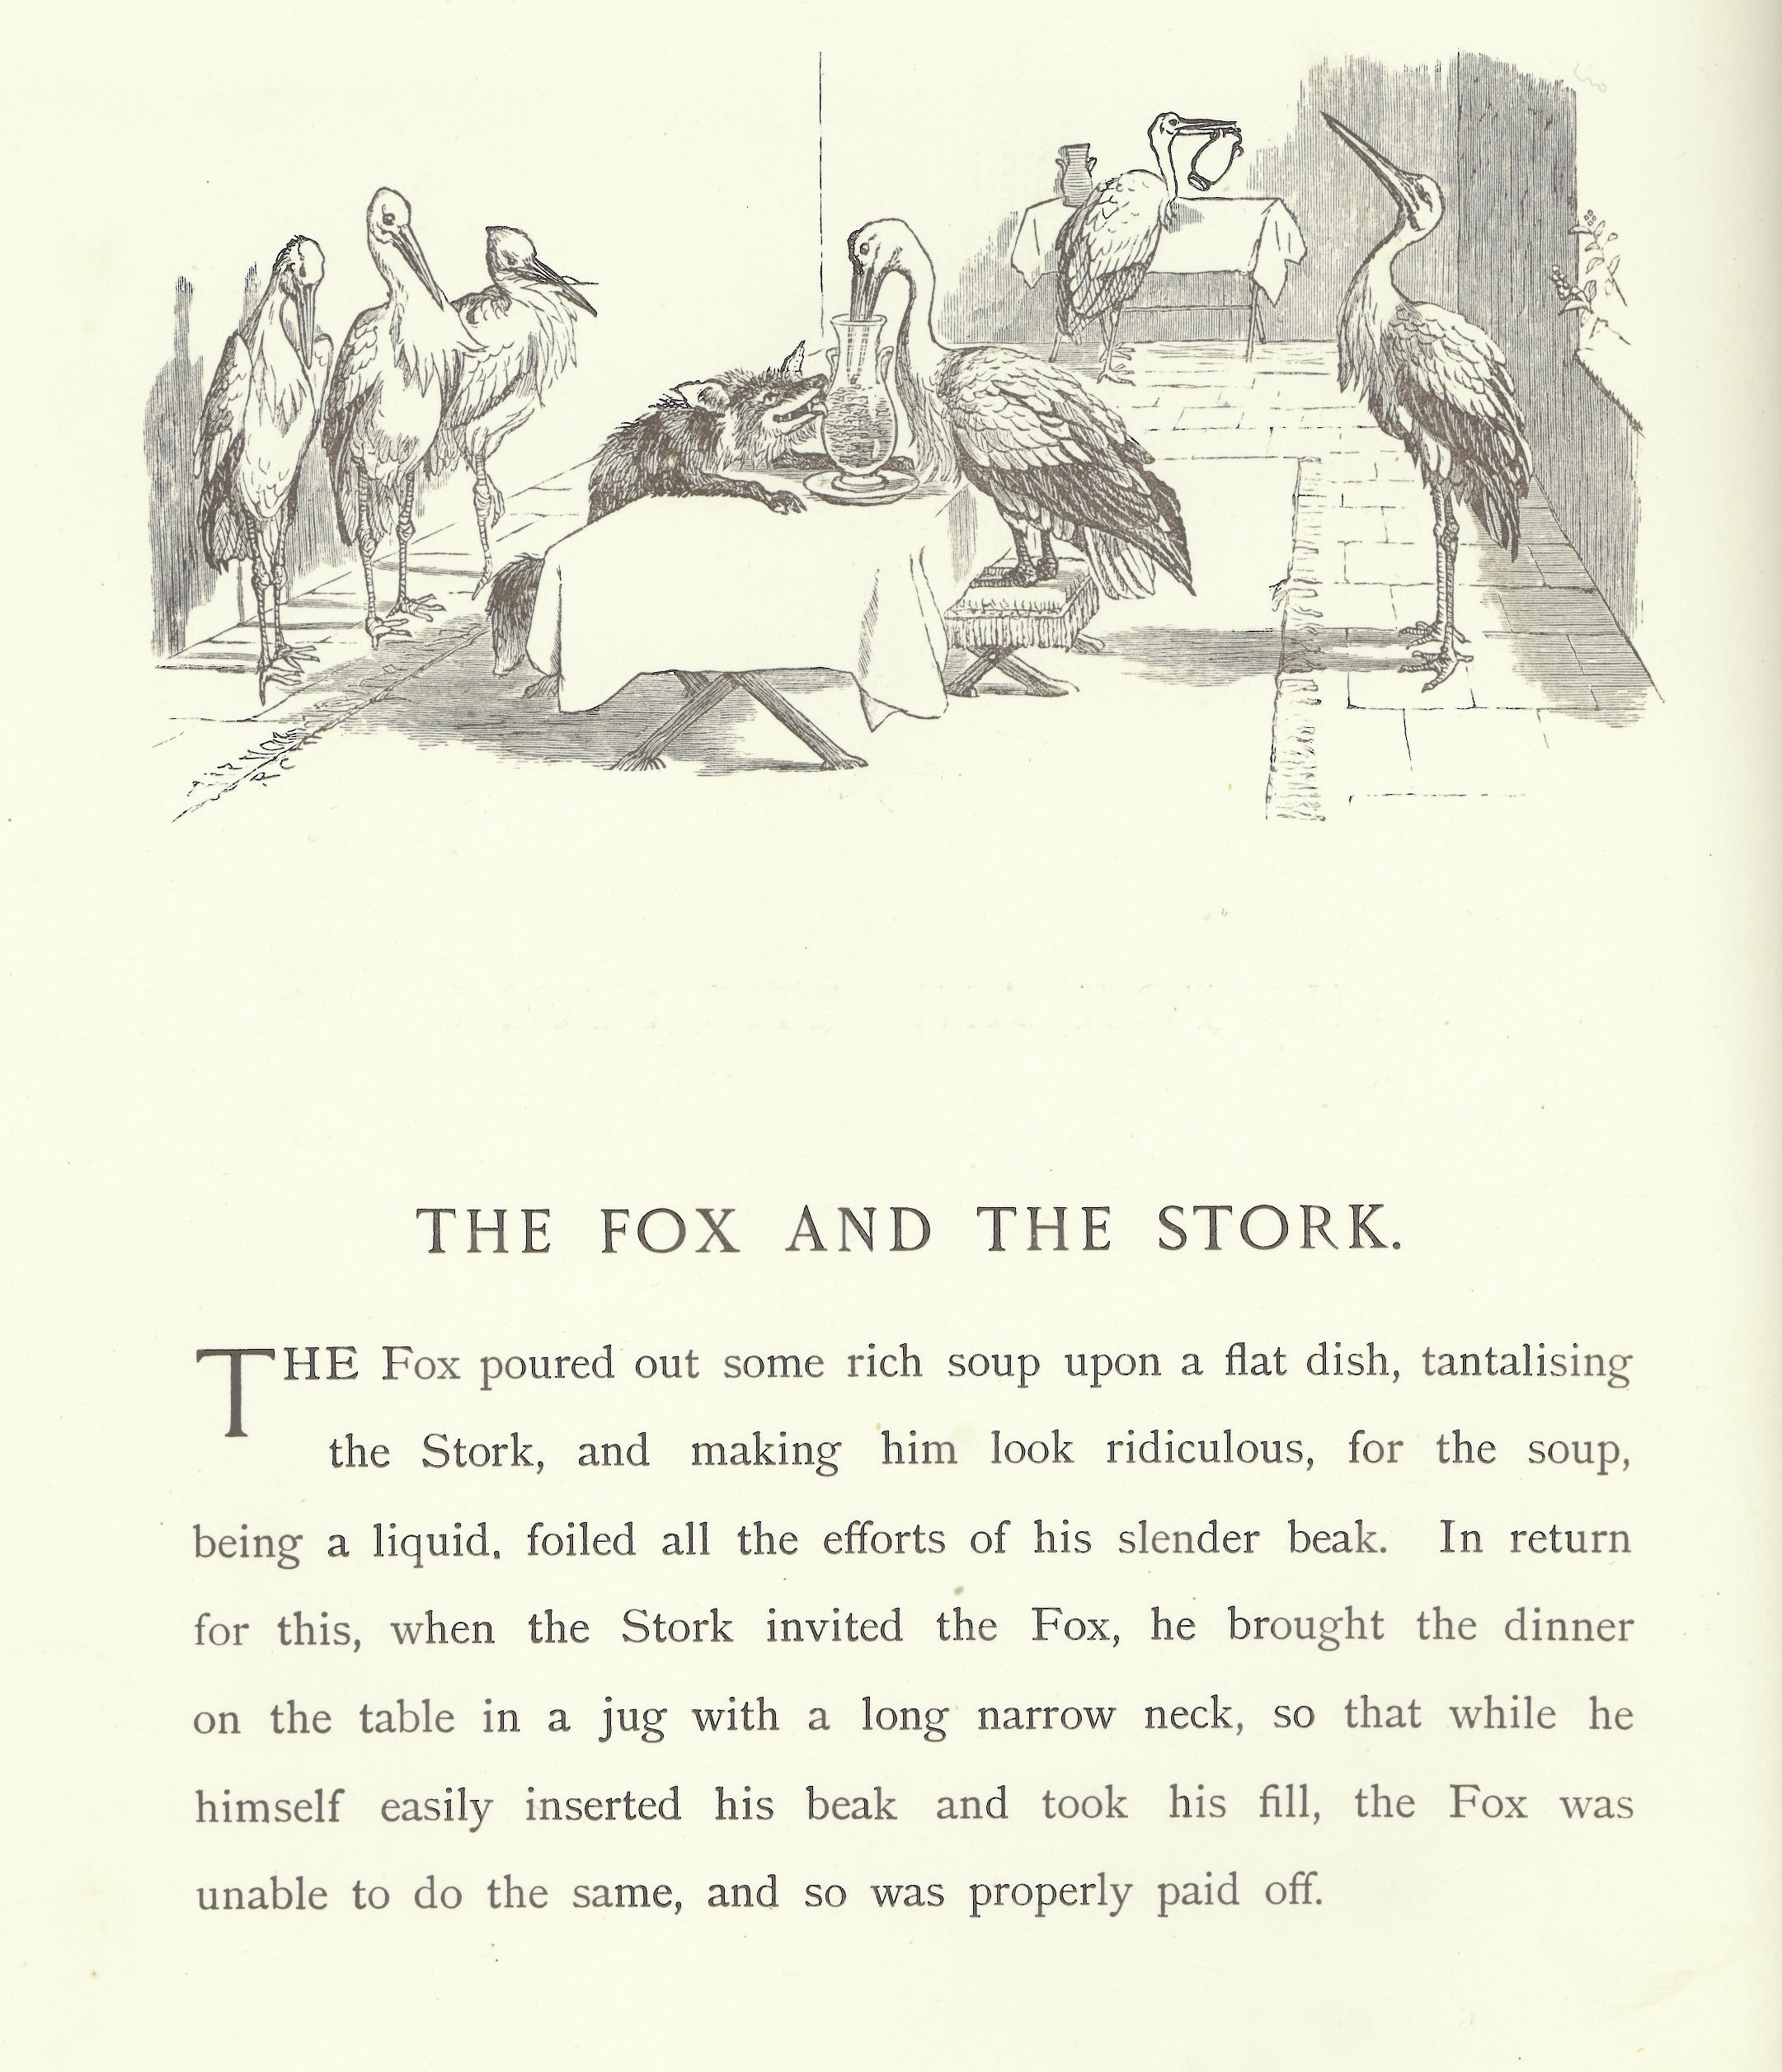 Aesop's Fox and the Stork